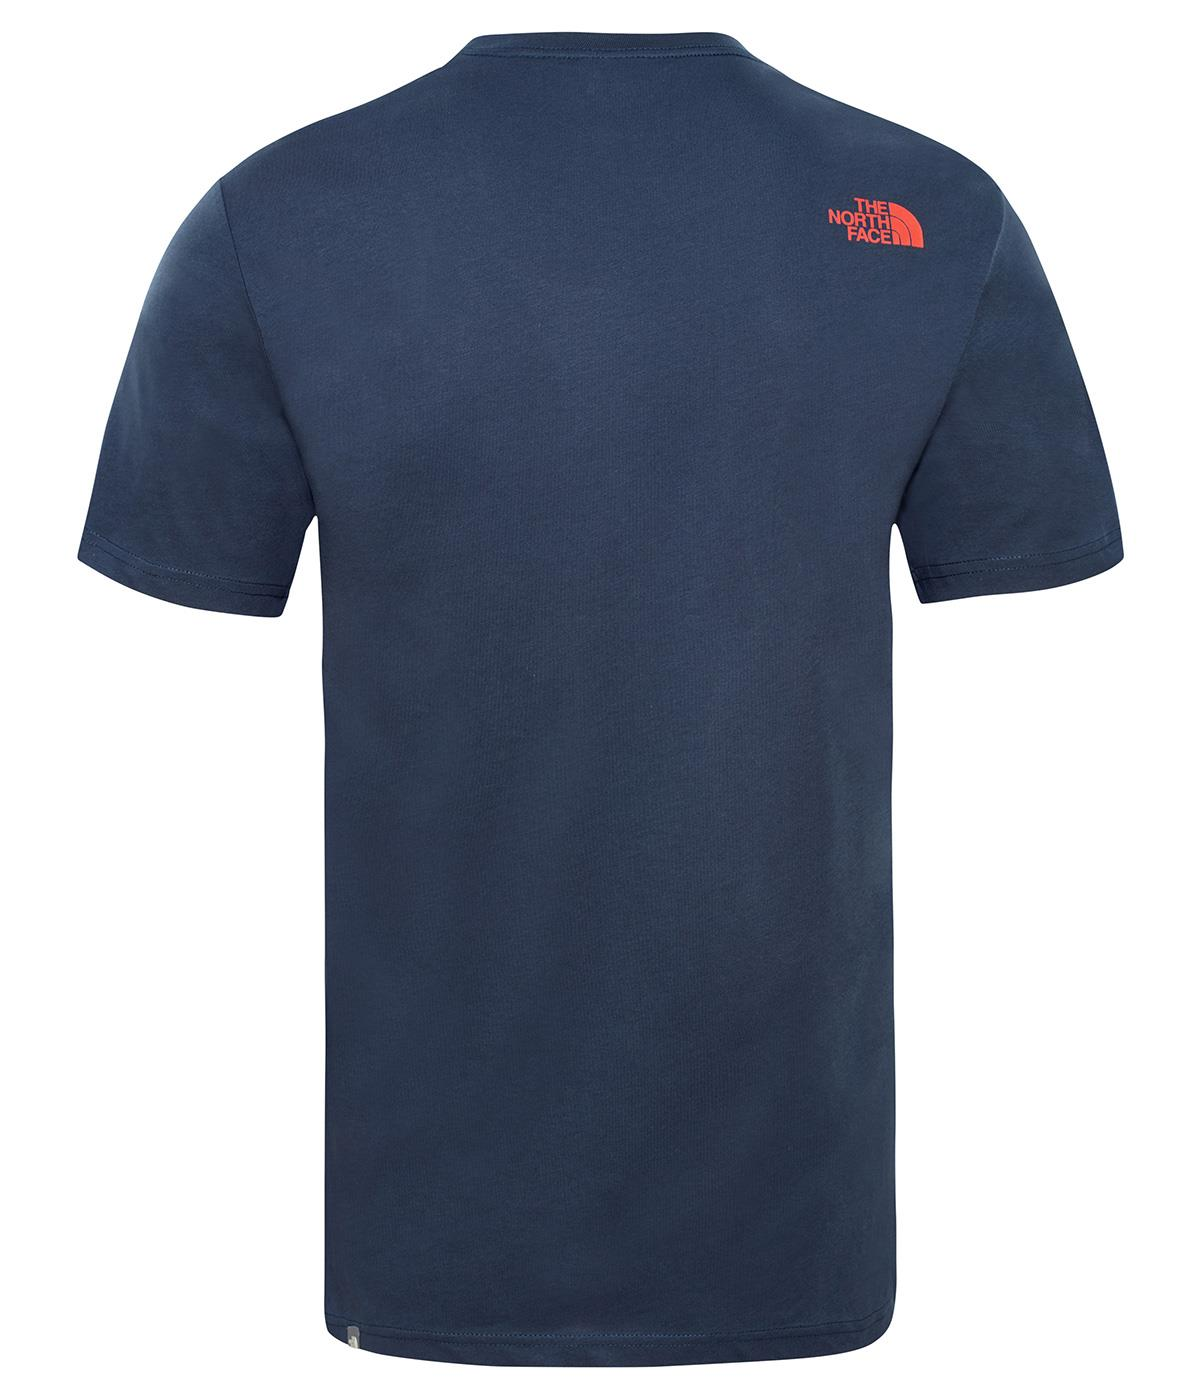 The Northface Erkek S/S Walls Are For Climbing Tee-Eu T93S3Sh2G Tişört